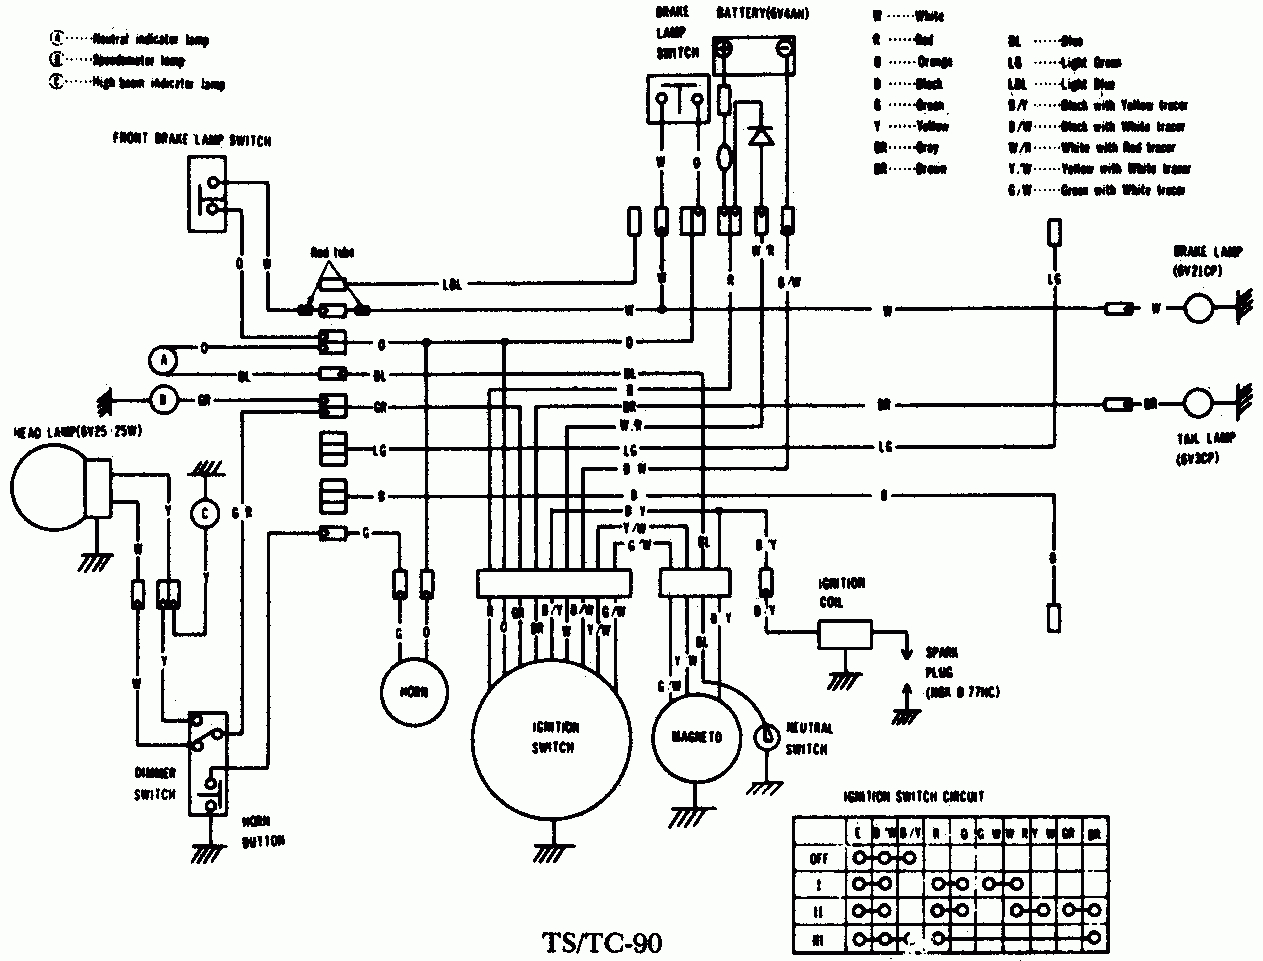 Diagram Suzuki Ts 185 Wiring Diagram Full Version Hd